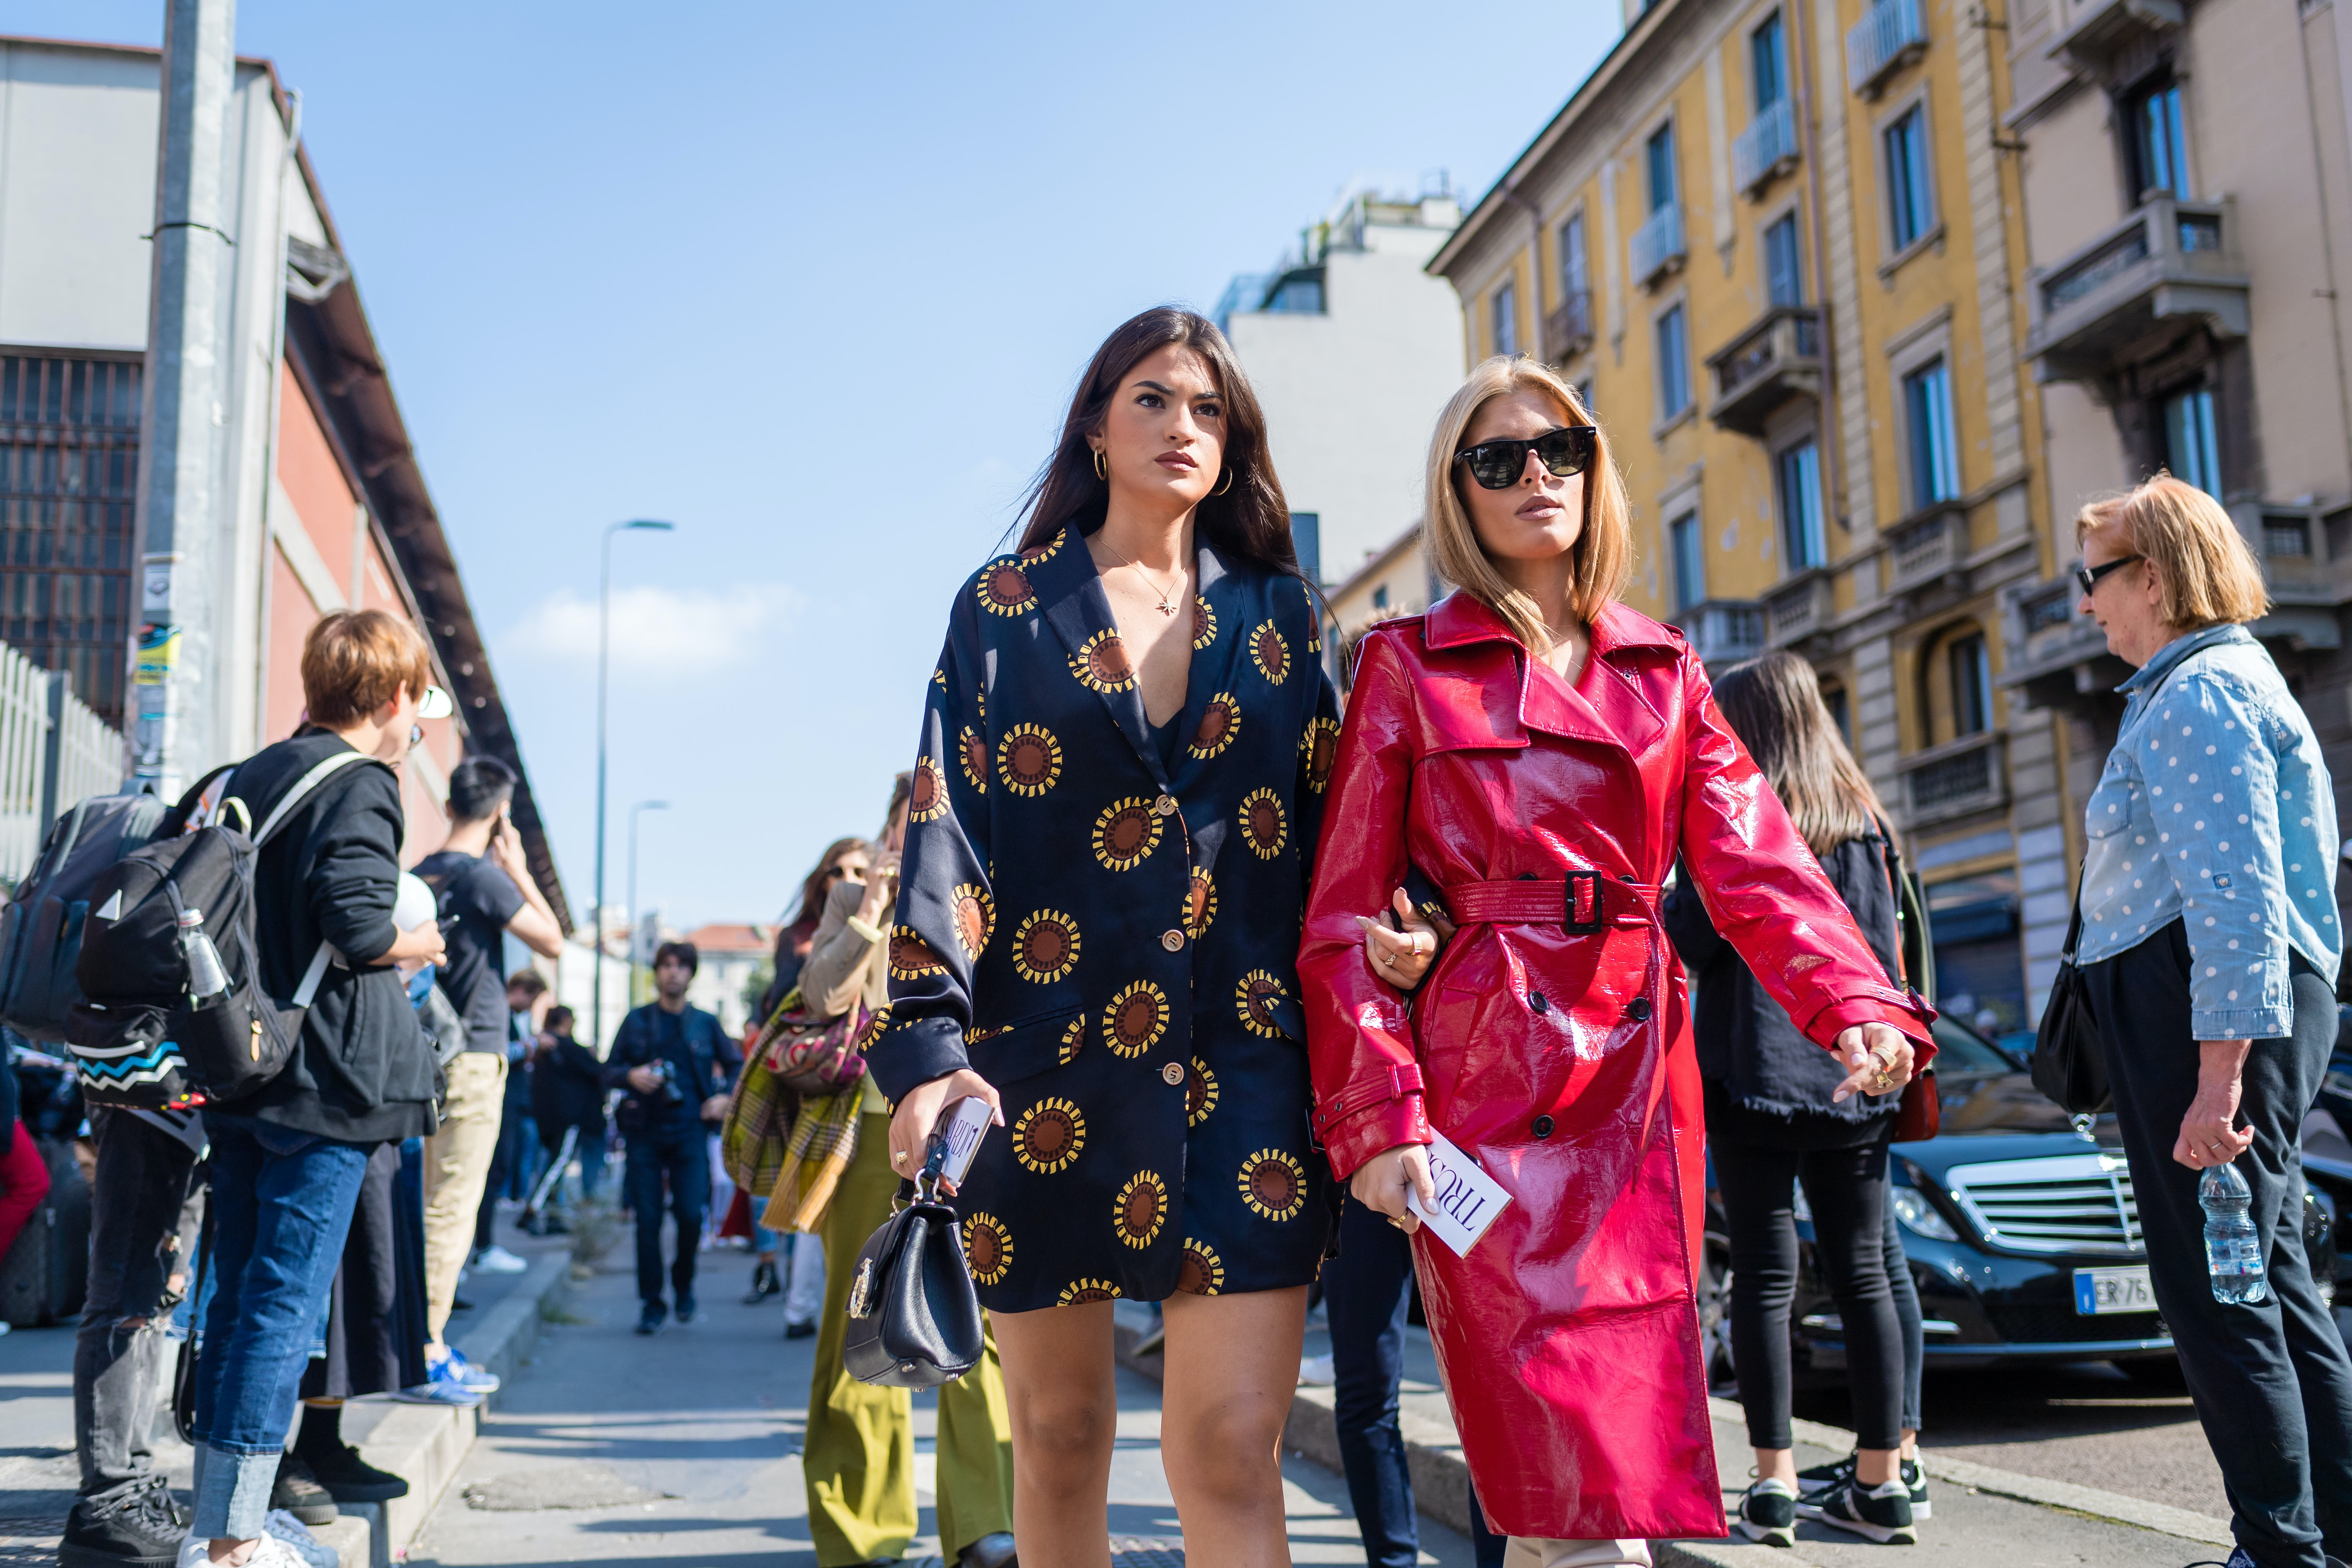 https://www.businessoffashion.com/articles/opinion/has-fashion-weeks-influencer-bubble-finally-burst